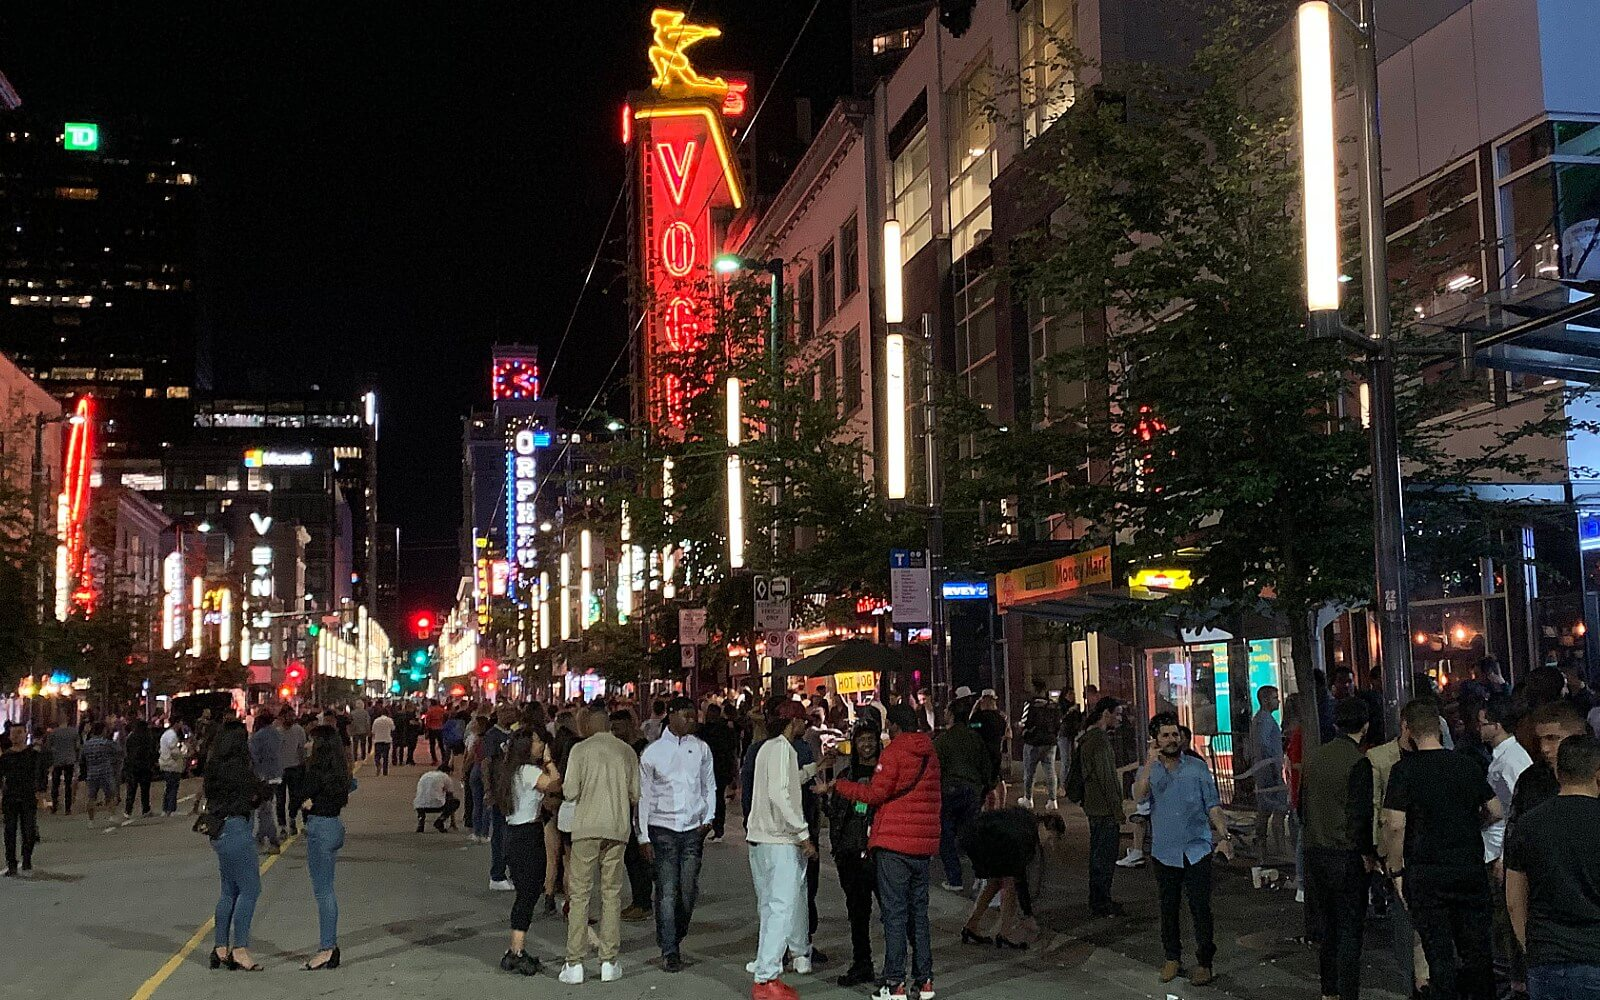 a crowd forms outside the bars on granville street in vancouver bc